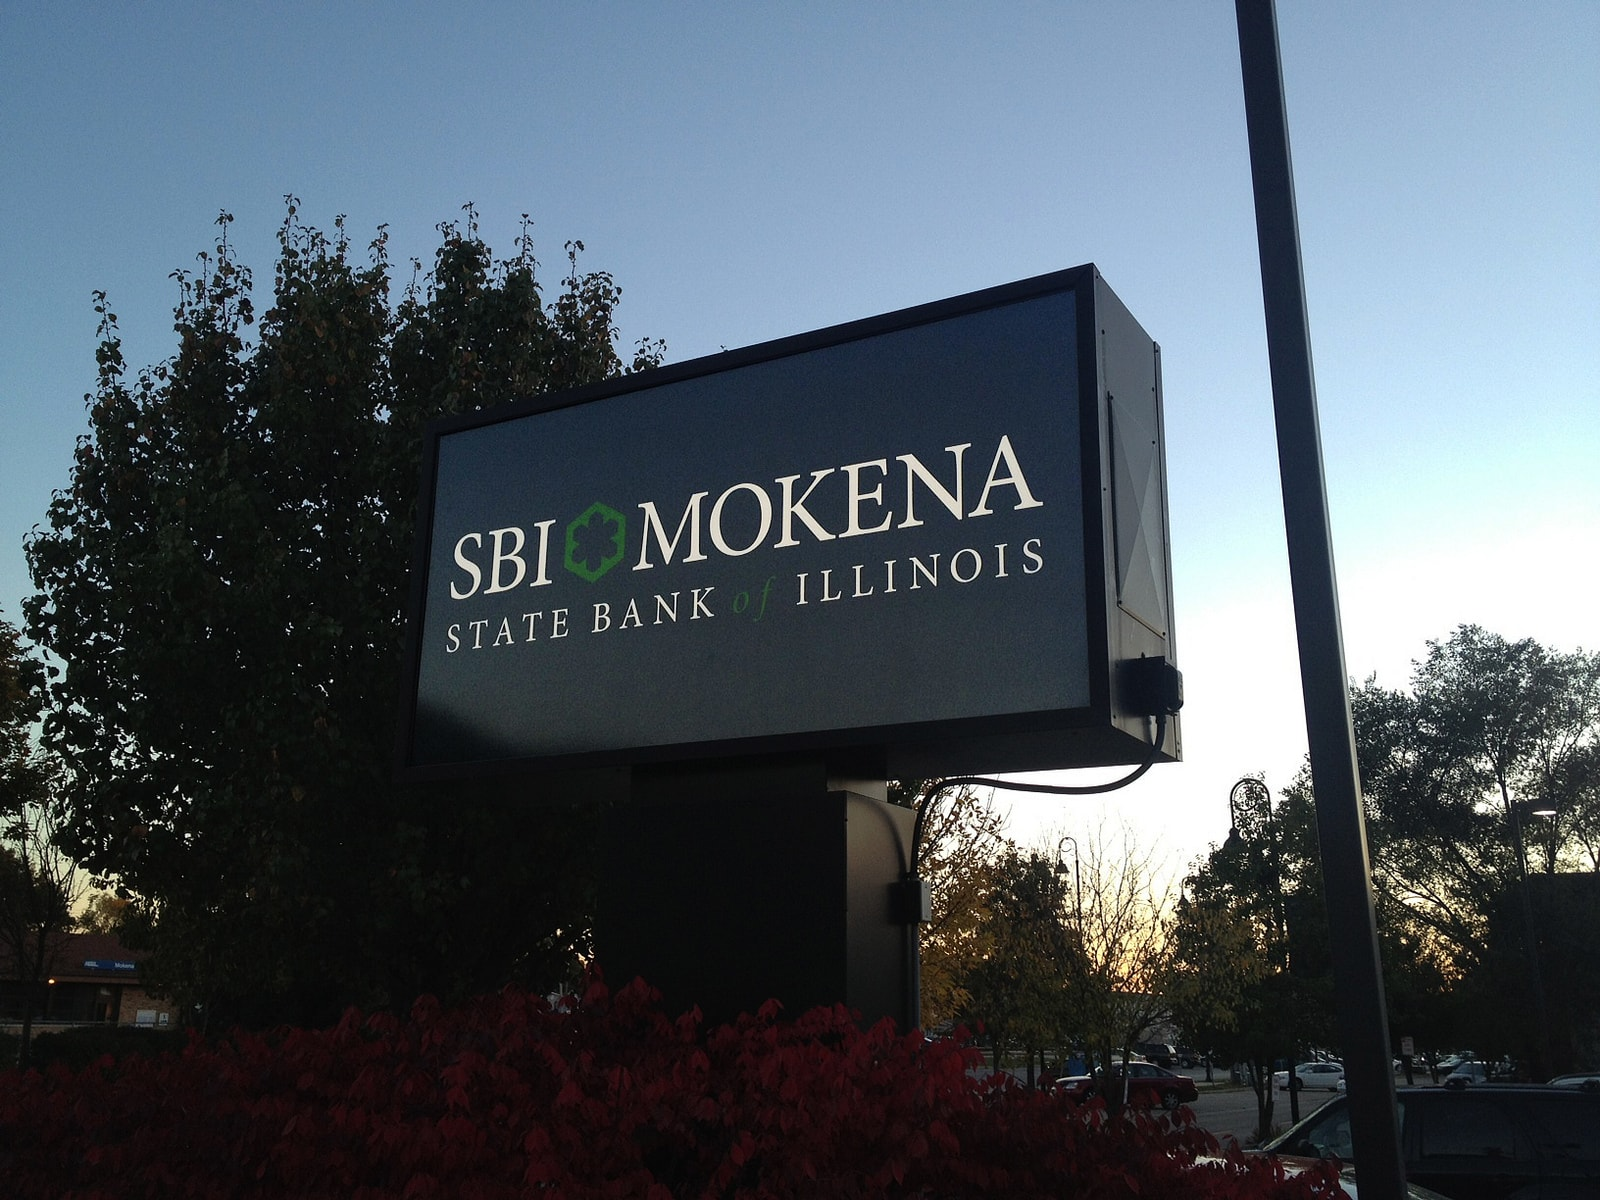 SBI Mokena State Bank of Illinois Exterior Sign